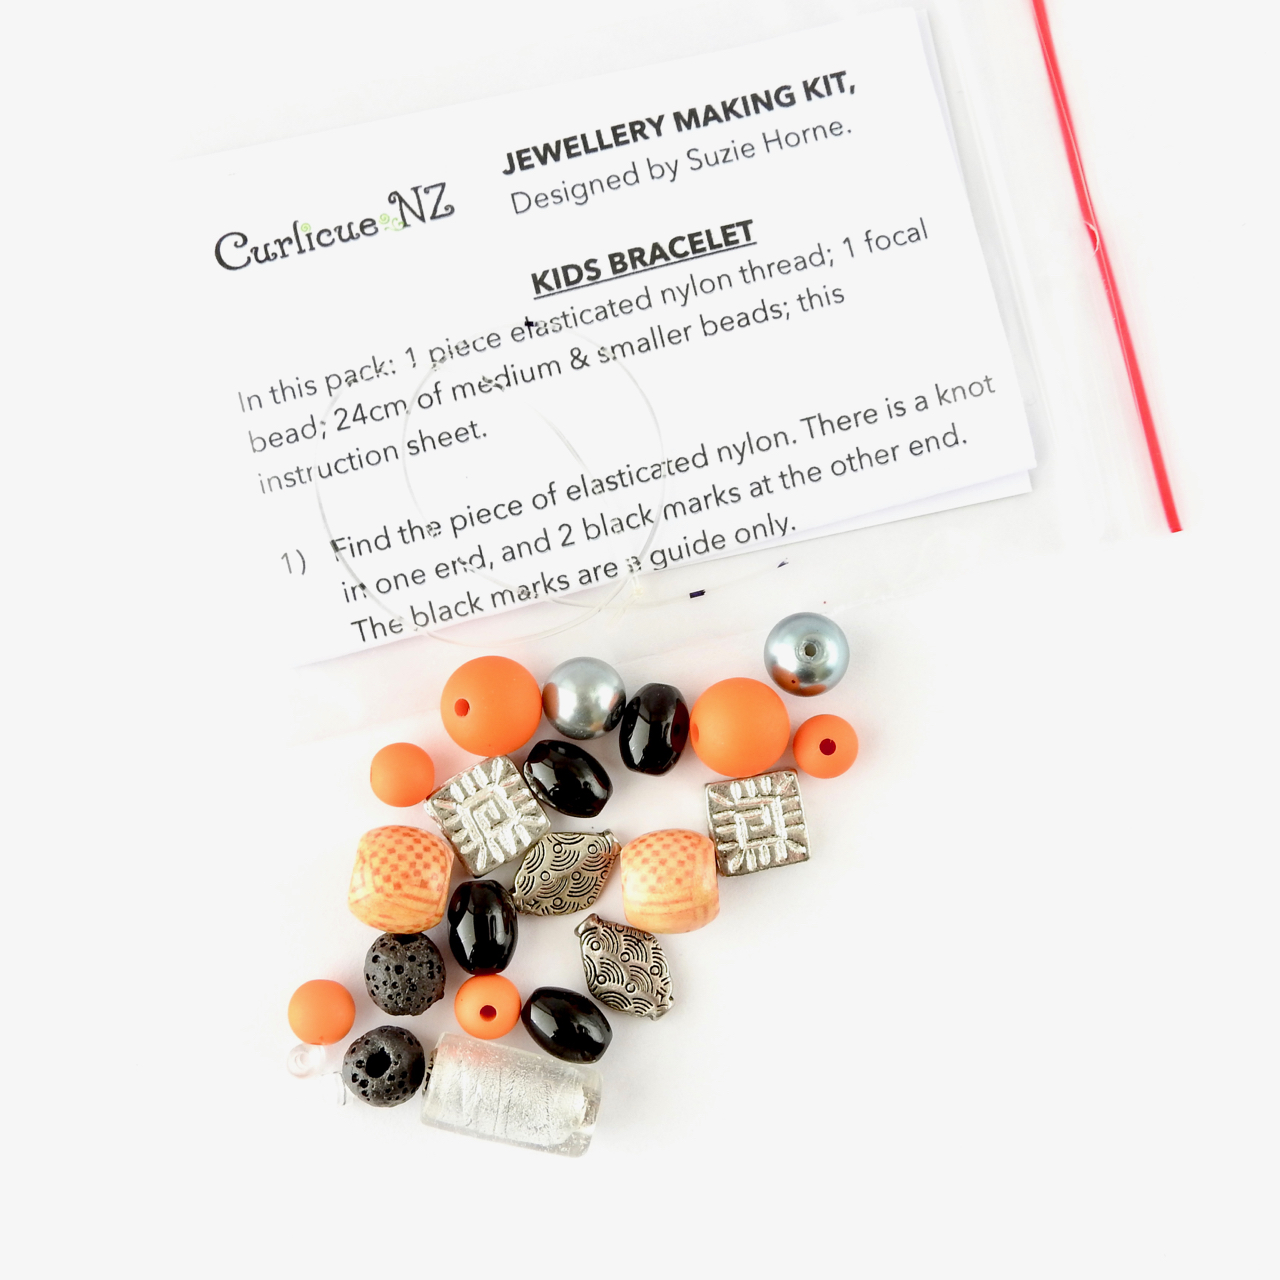 Unisex kids bracelet making kit in orange, silver and black